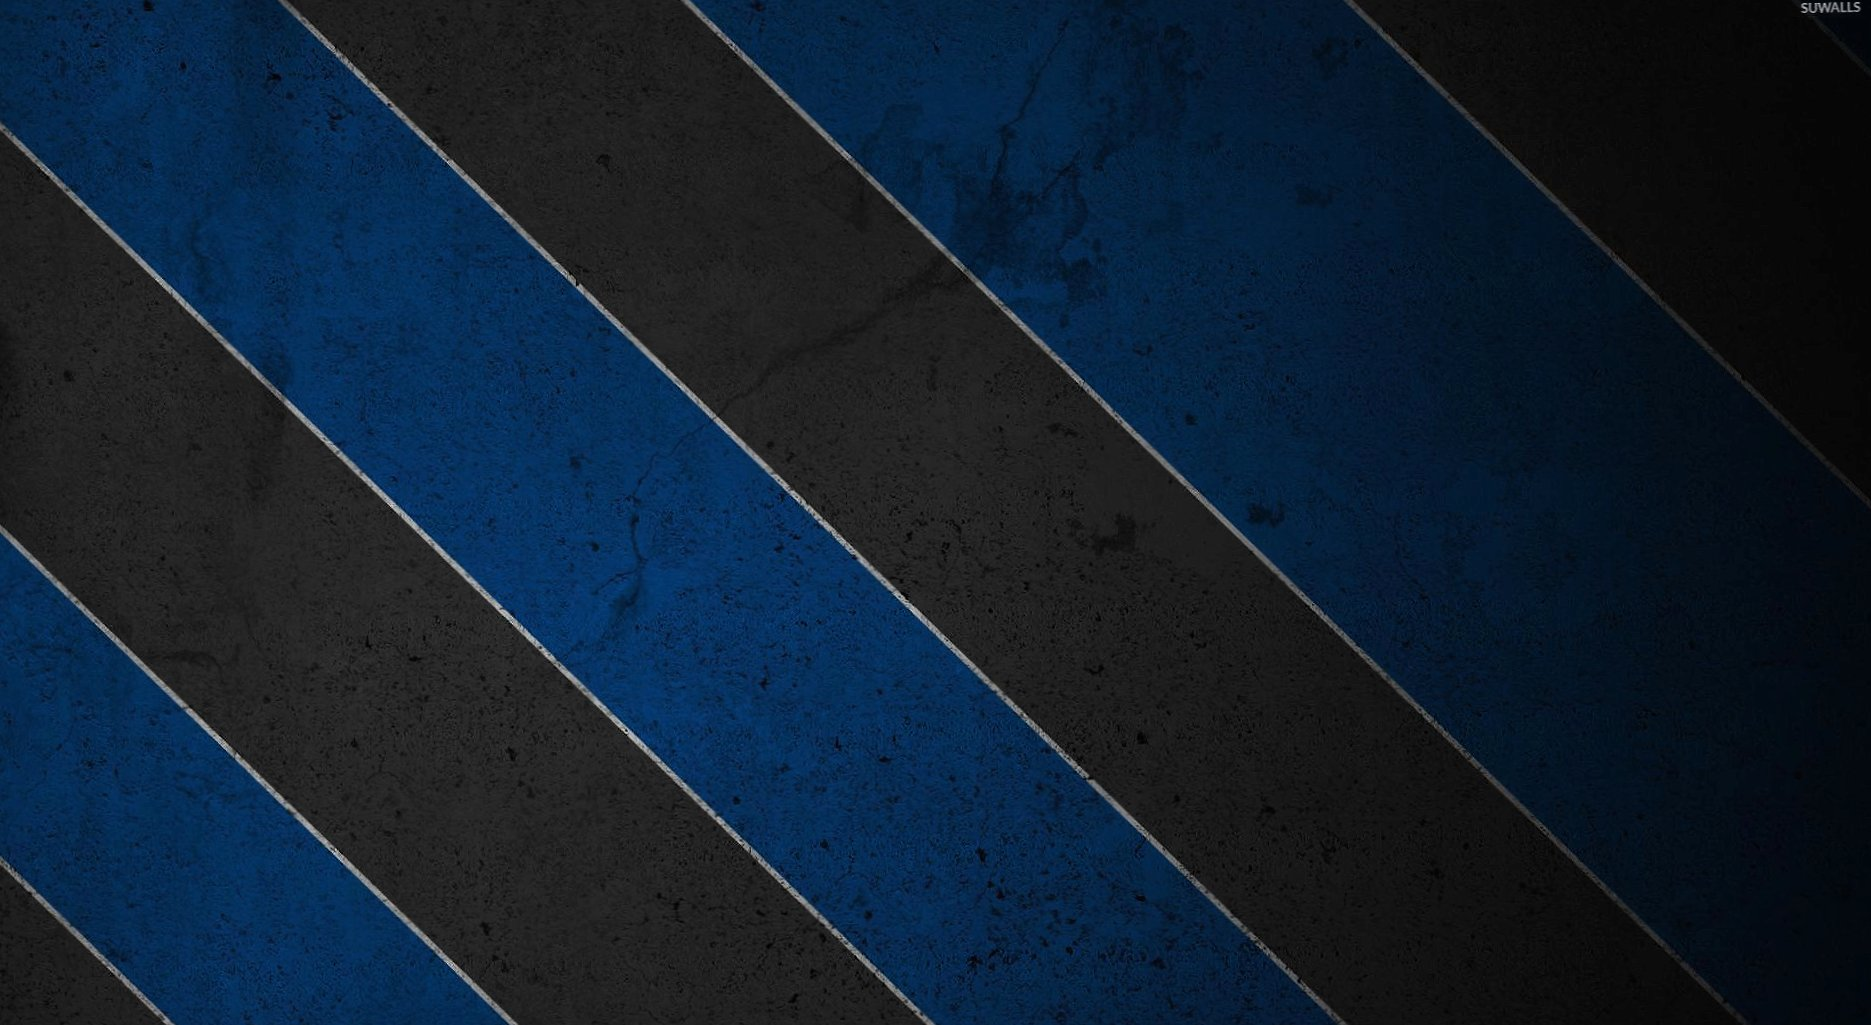 Texturized black and blue stripes wallpapers HD quality